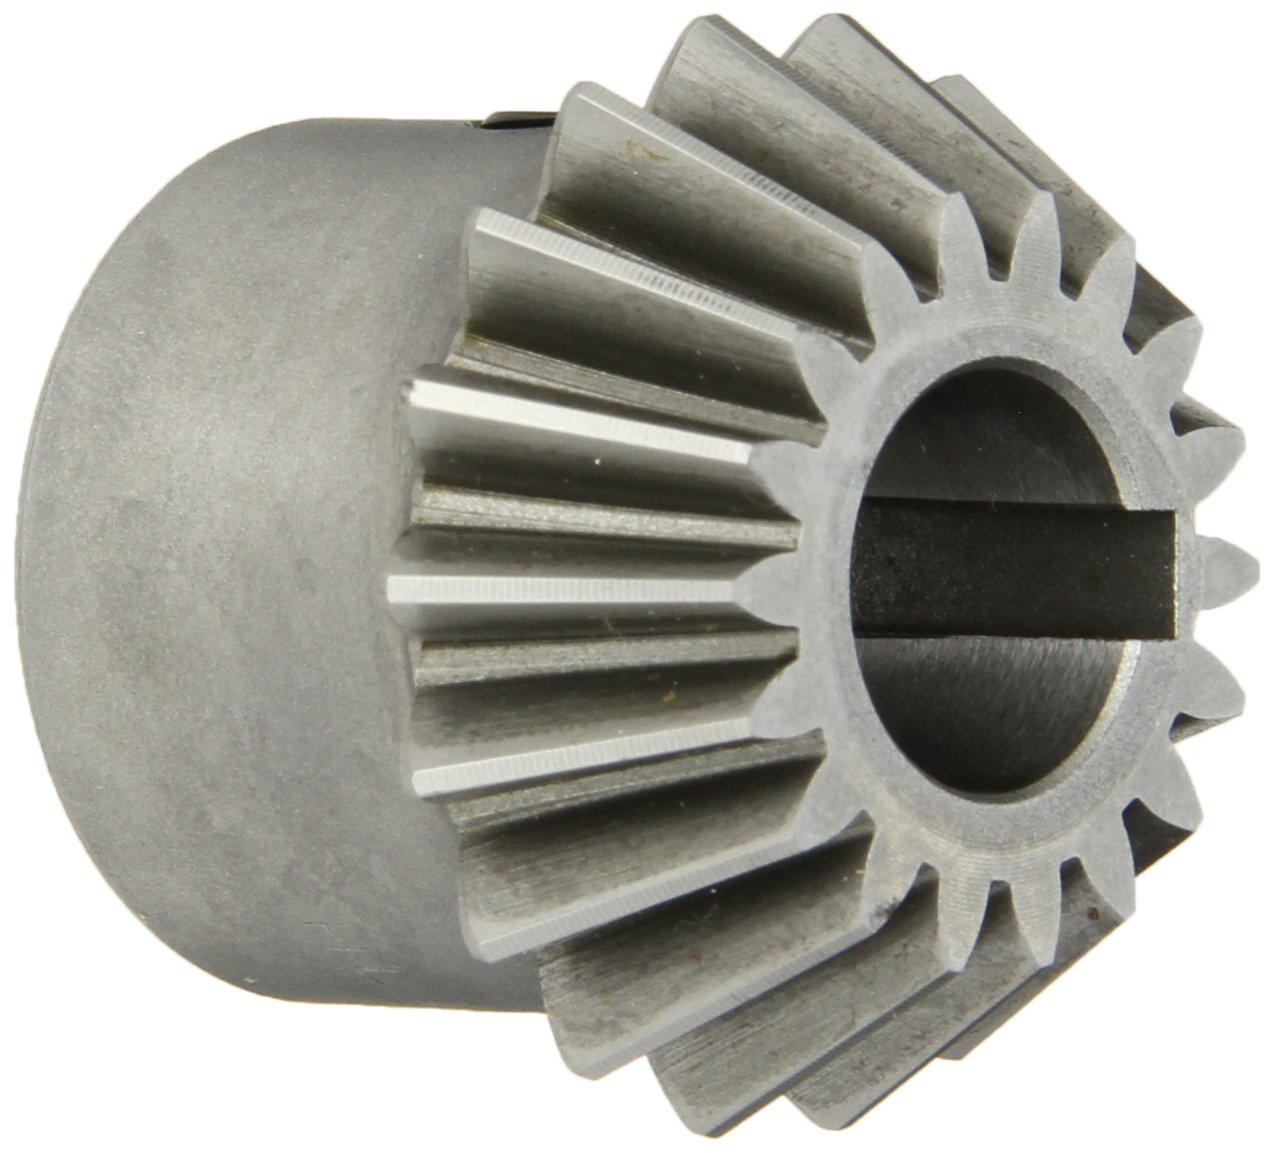 Boston Gear HL152Y-P Bevel Pinion Gear, 2:1 Ratio, 0.625'' Bore, 12 Pitch, 18 Teeth, 20 Degree Pressure Angle, Straight Bevel, Keyway, Steel with Case-Hardened Teeth